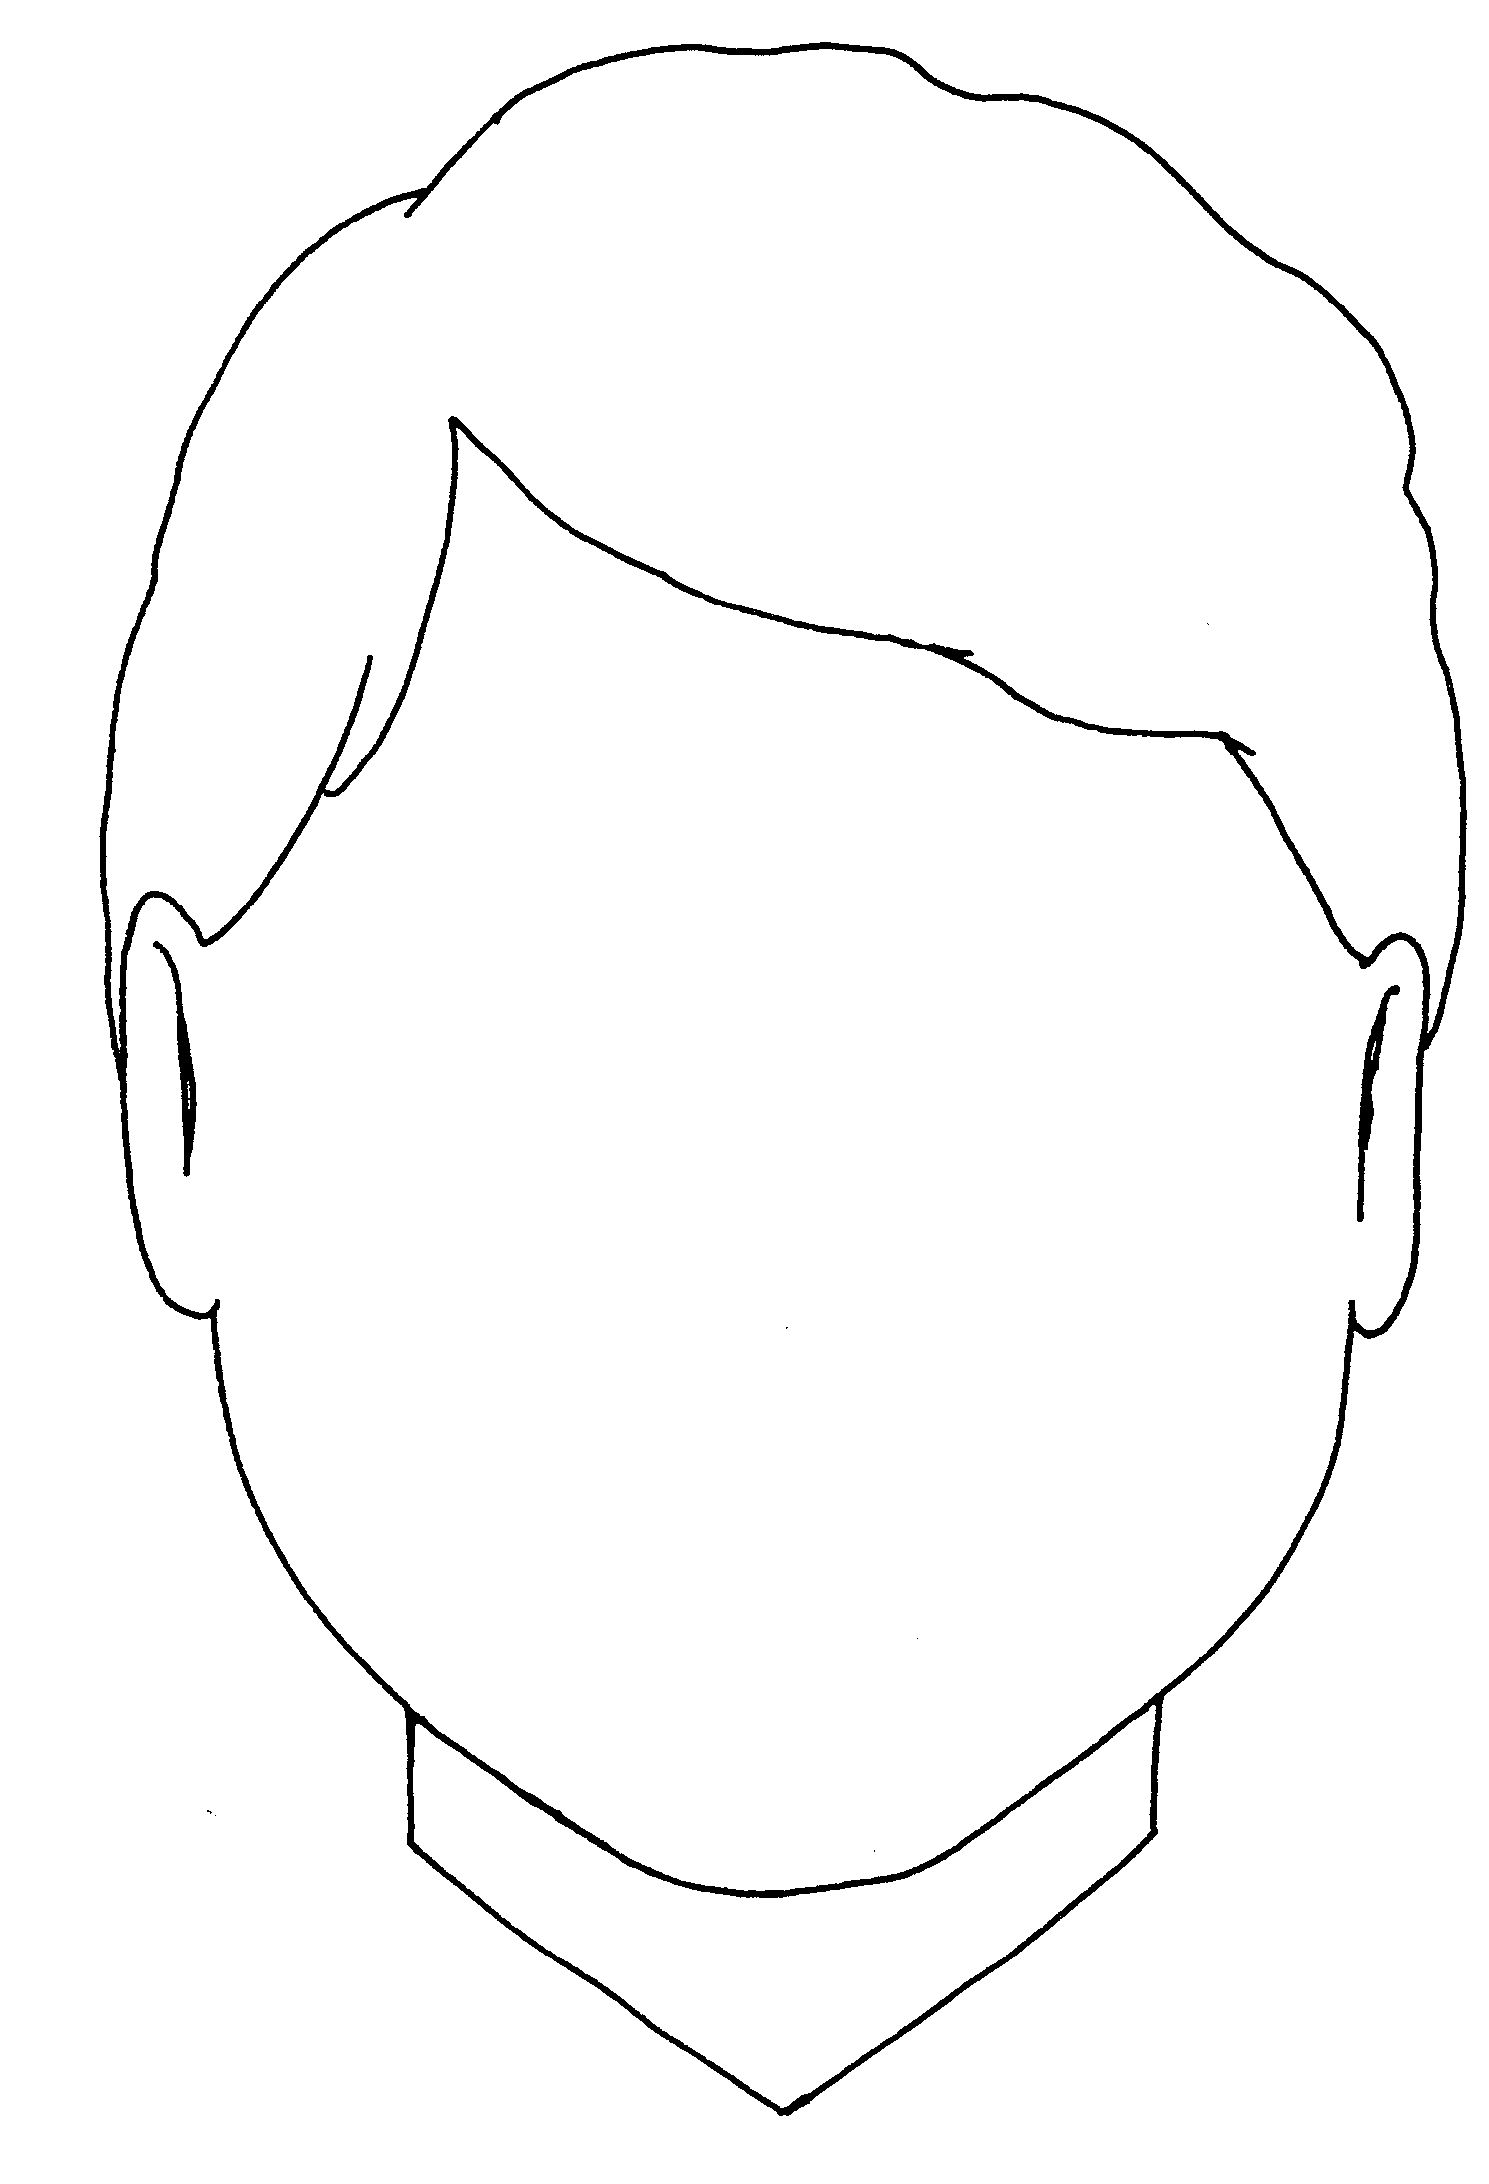 Clip Art Person Outline Coloring Page person outline coloring page az pages boy body for all ages